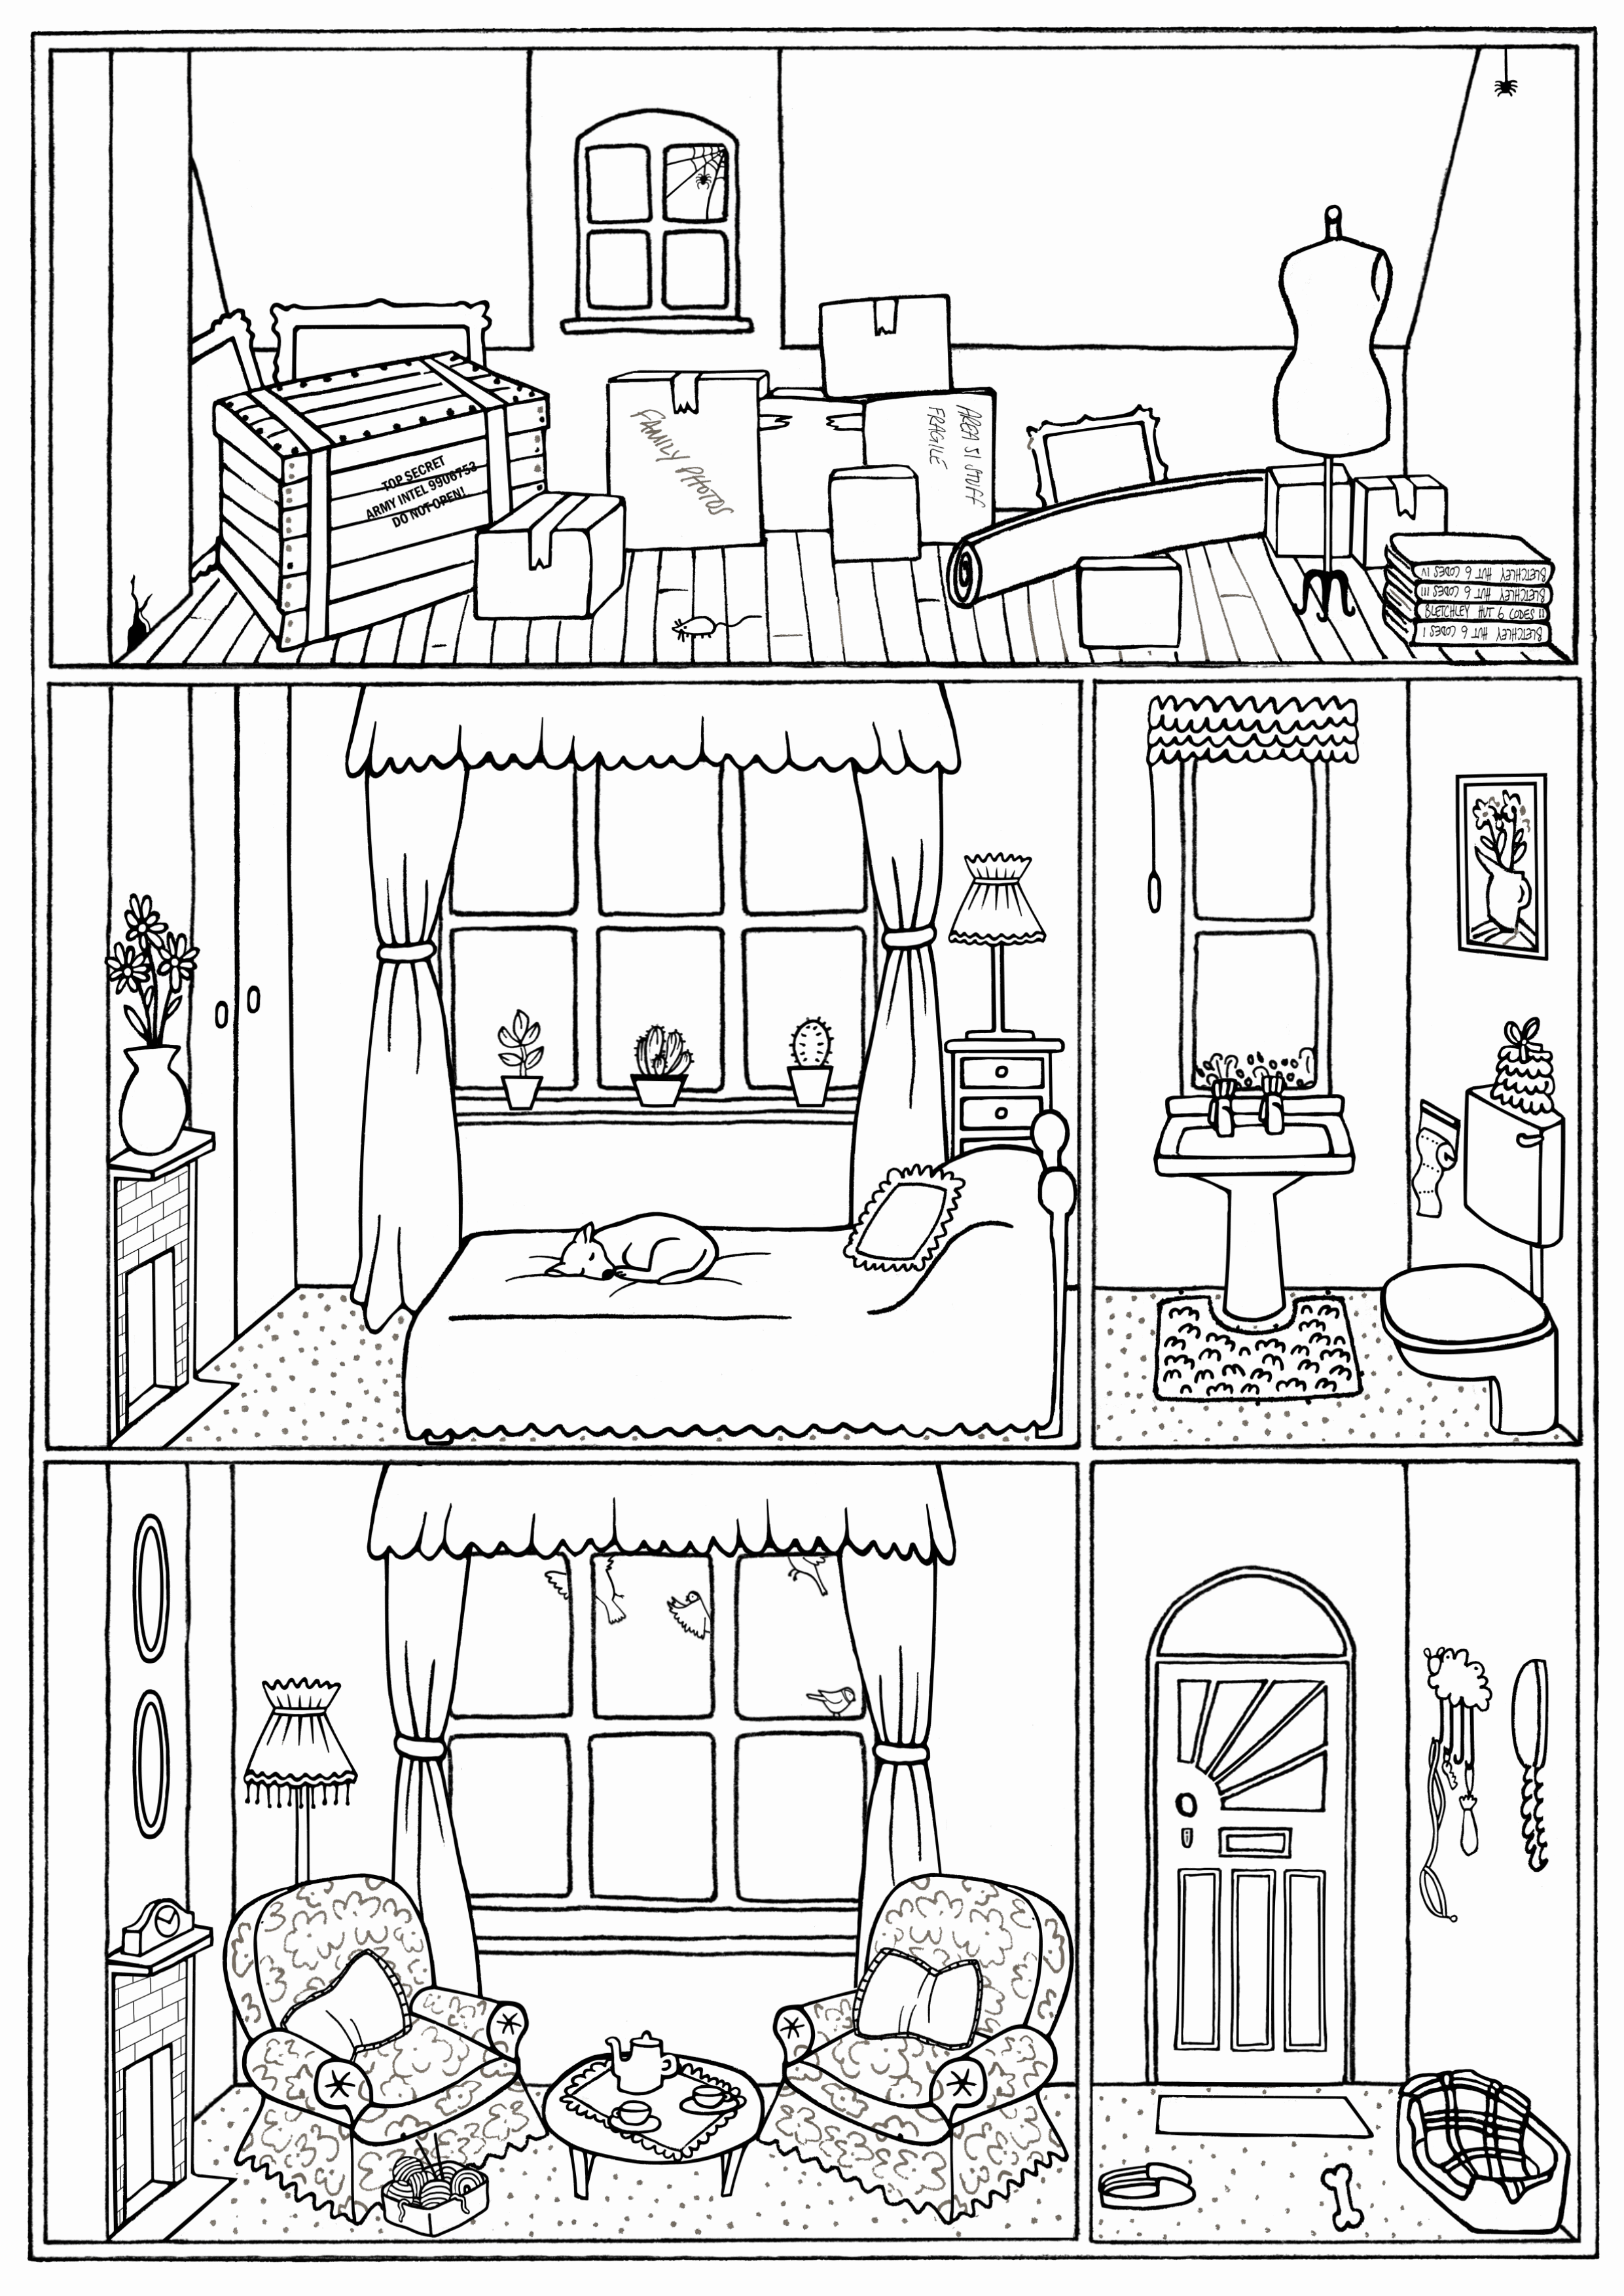 House Interior Coloring